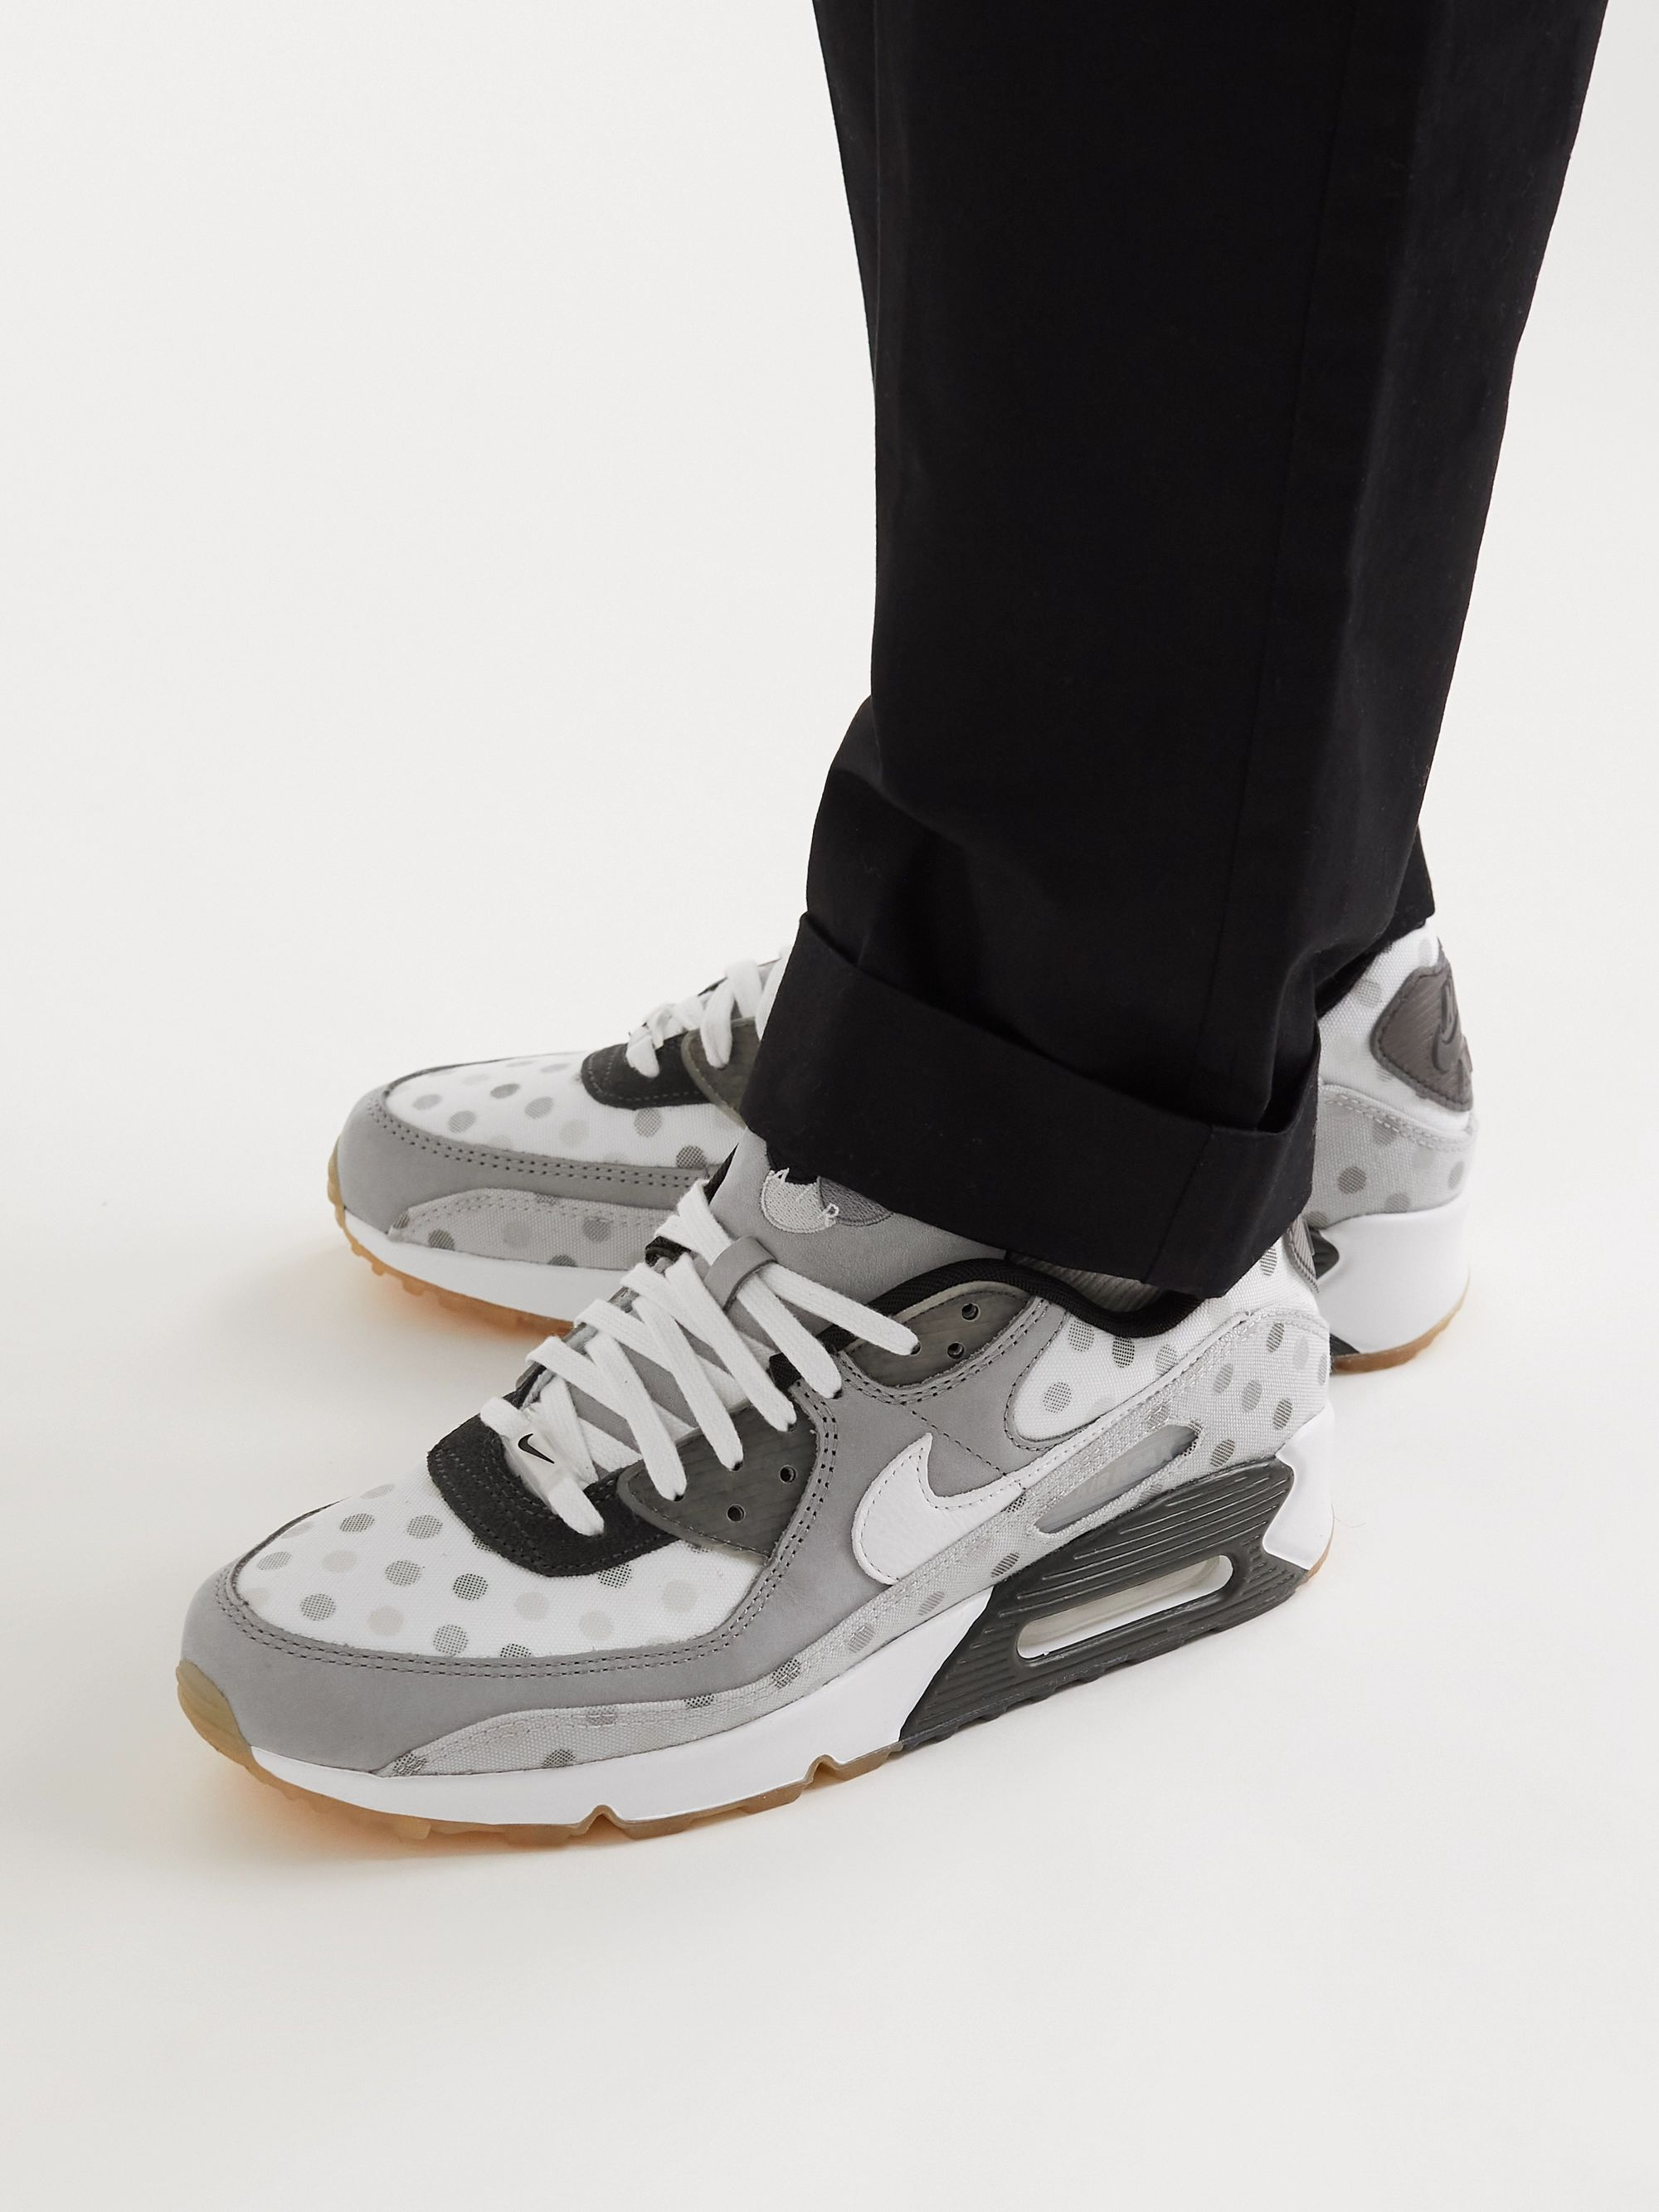 Air Max 90 NRG Polka-Dot Mesh, Leather and Suede Sneakers